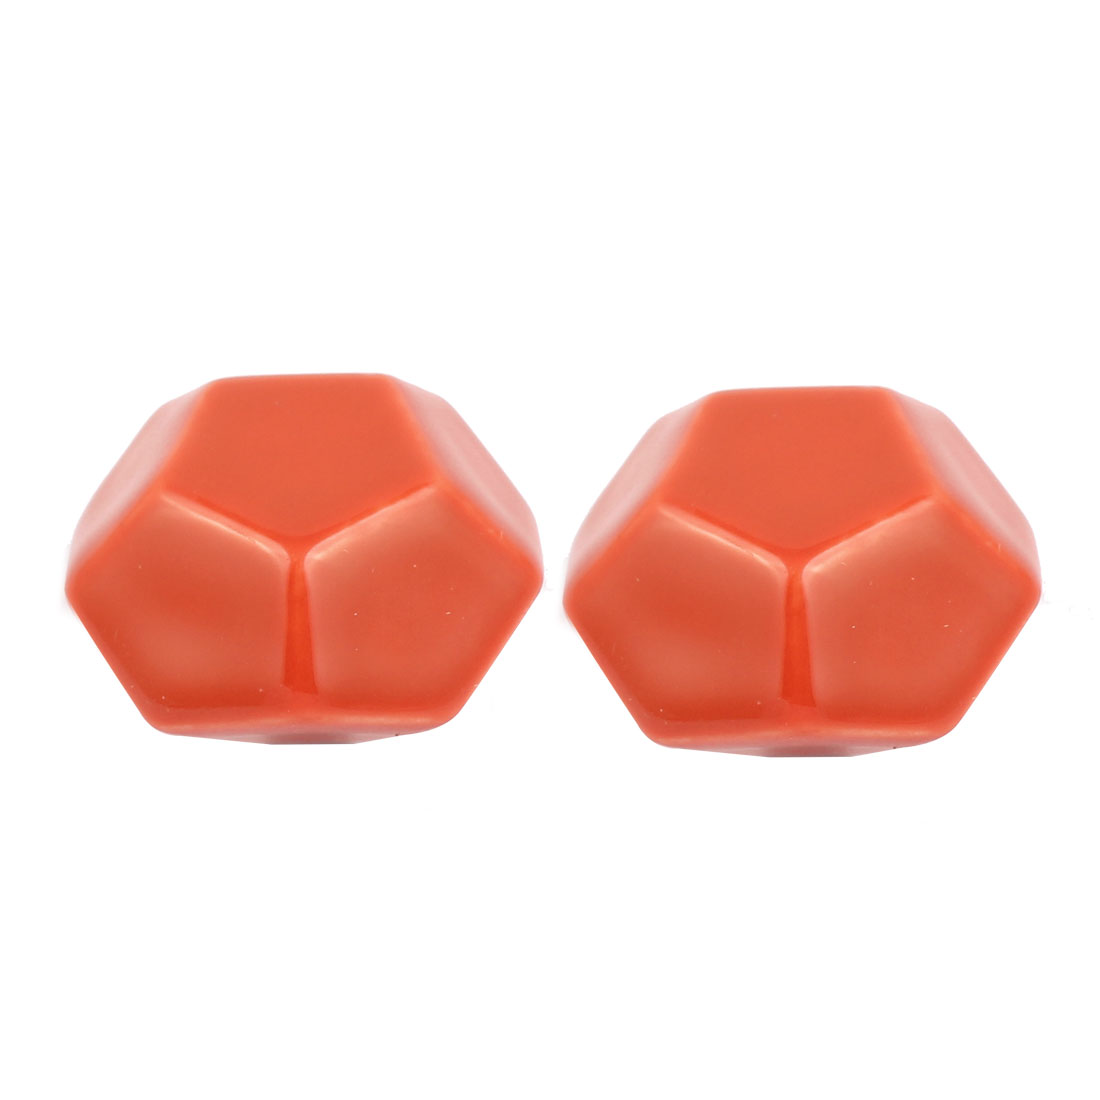 Cabinet Wardrobe Drawer Door Pull Diamond Shape Ceramic Knobs Handle Orange 2pcs